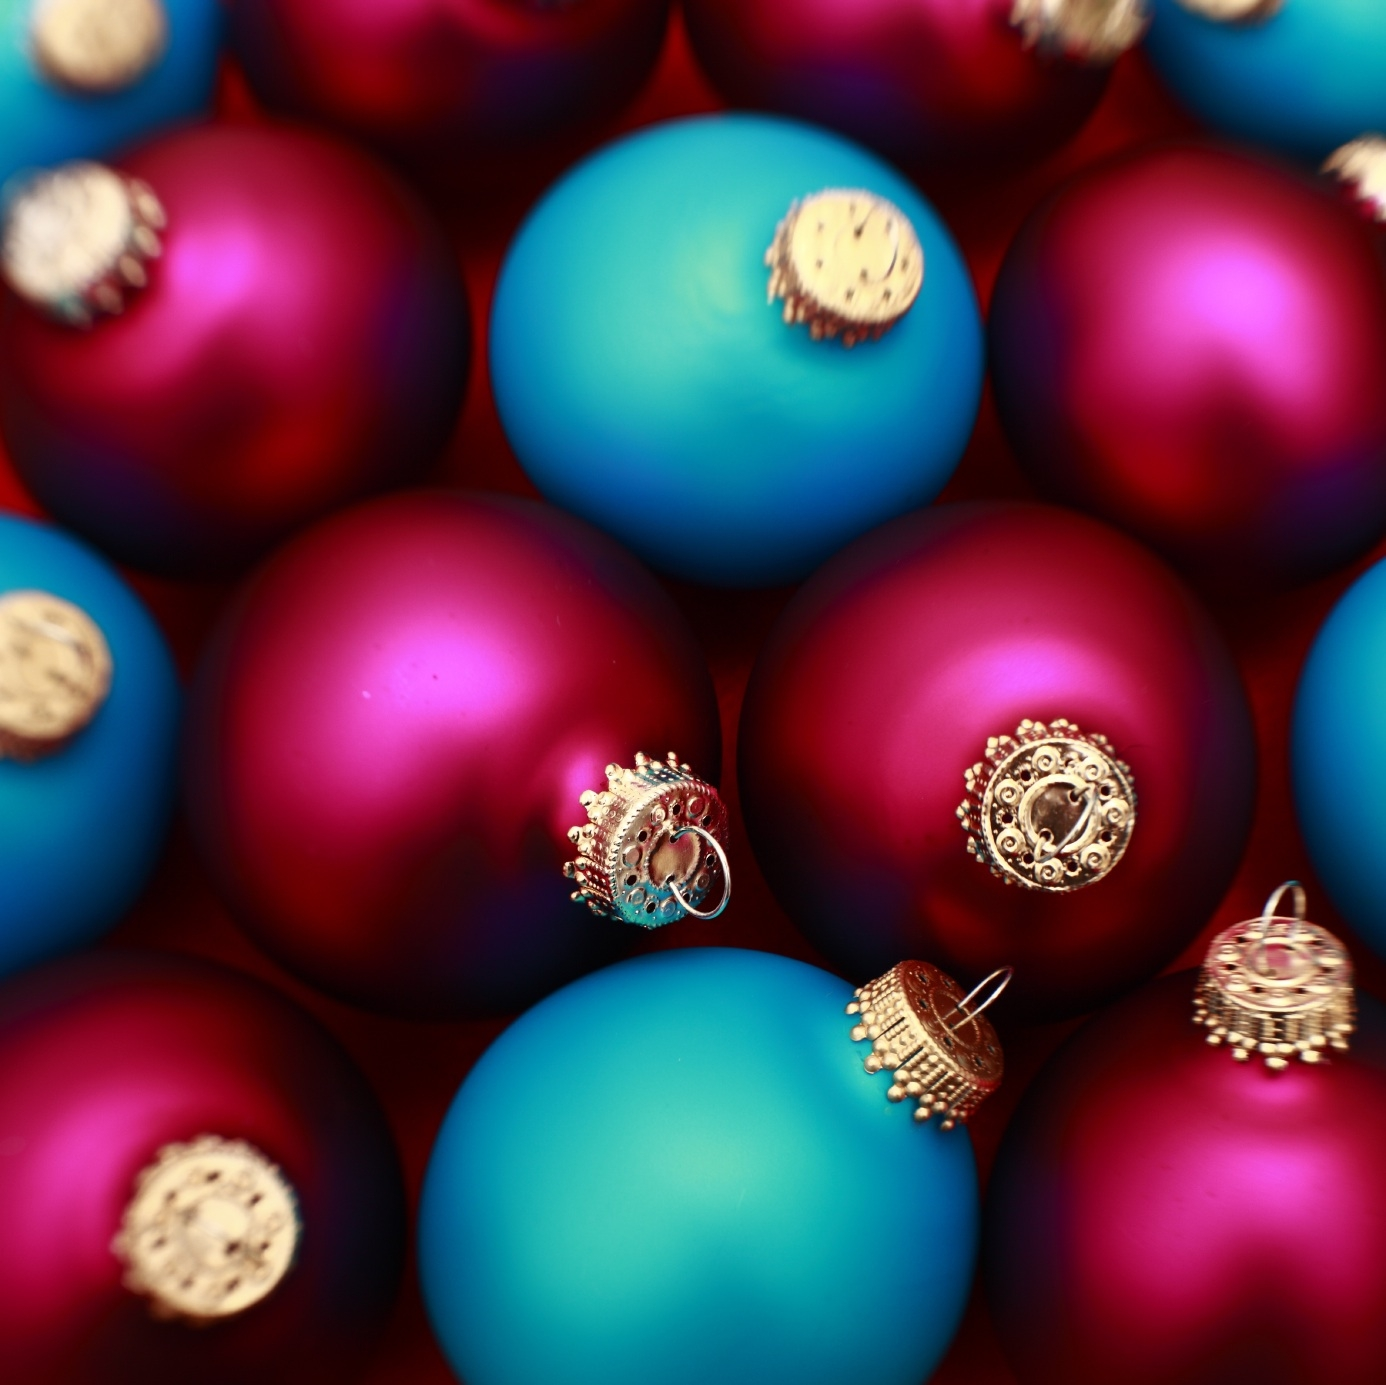 Red and blue Christmas balls